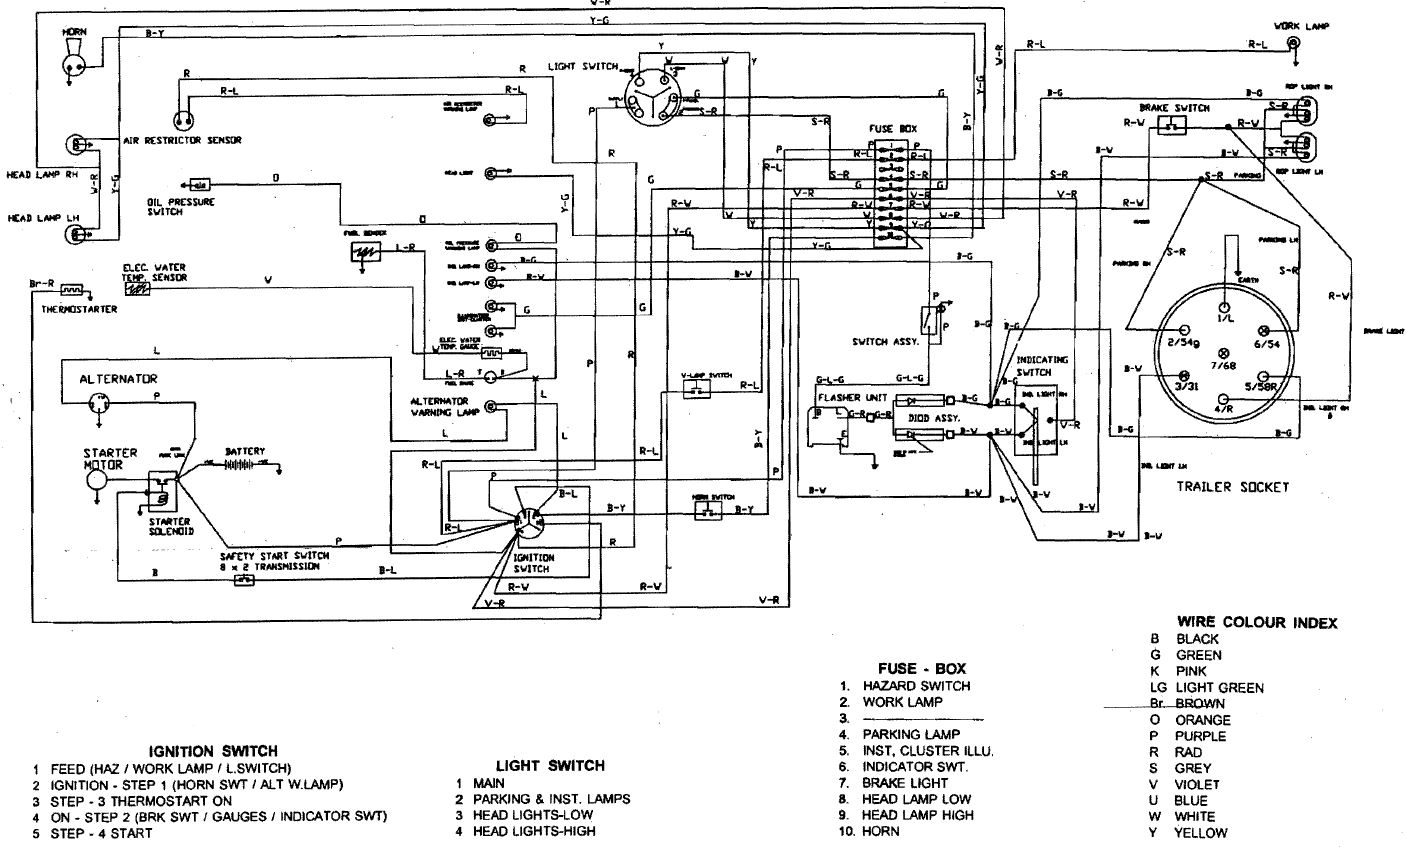 20158463319_b82d524c3d_o ignition switch wiring diagram ignition switch wiring diagram at bakdesigns.co